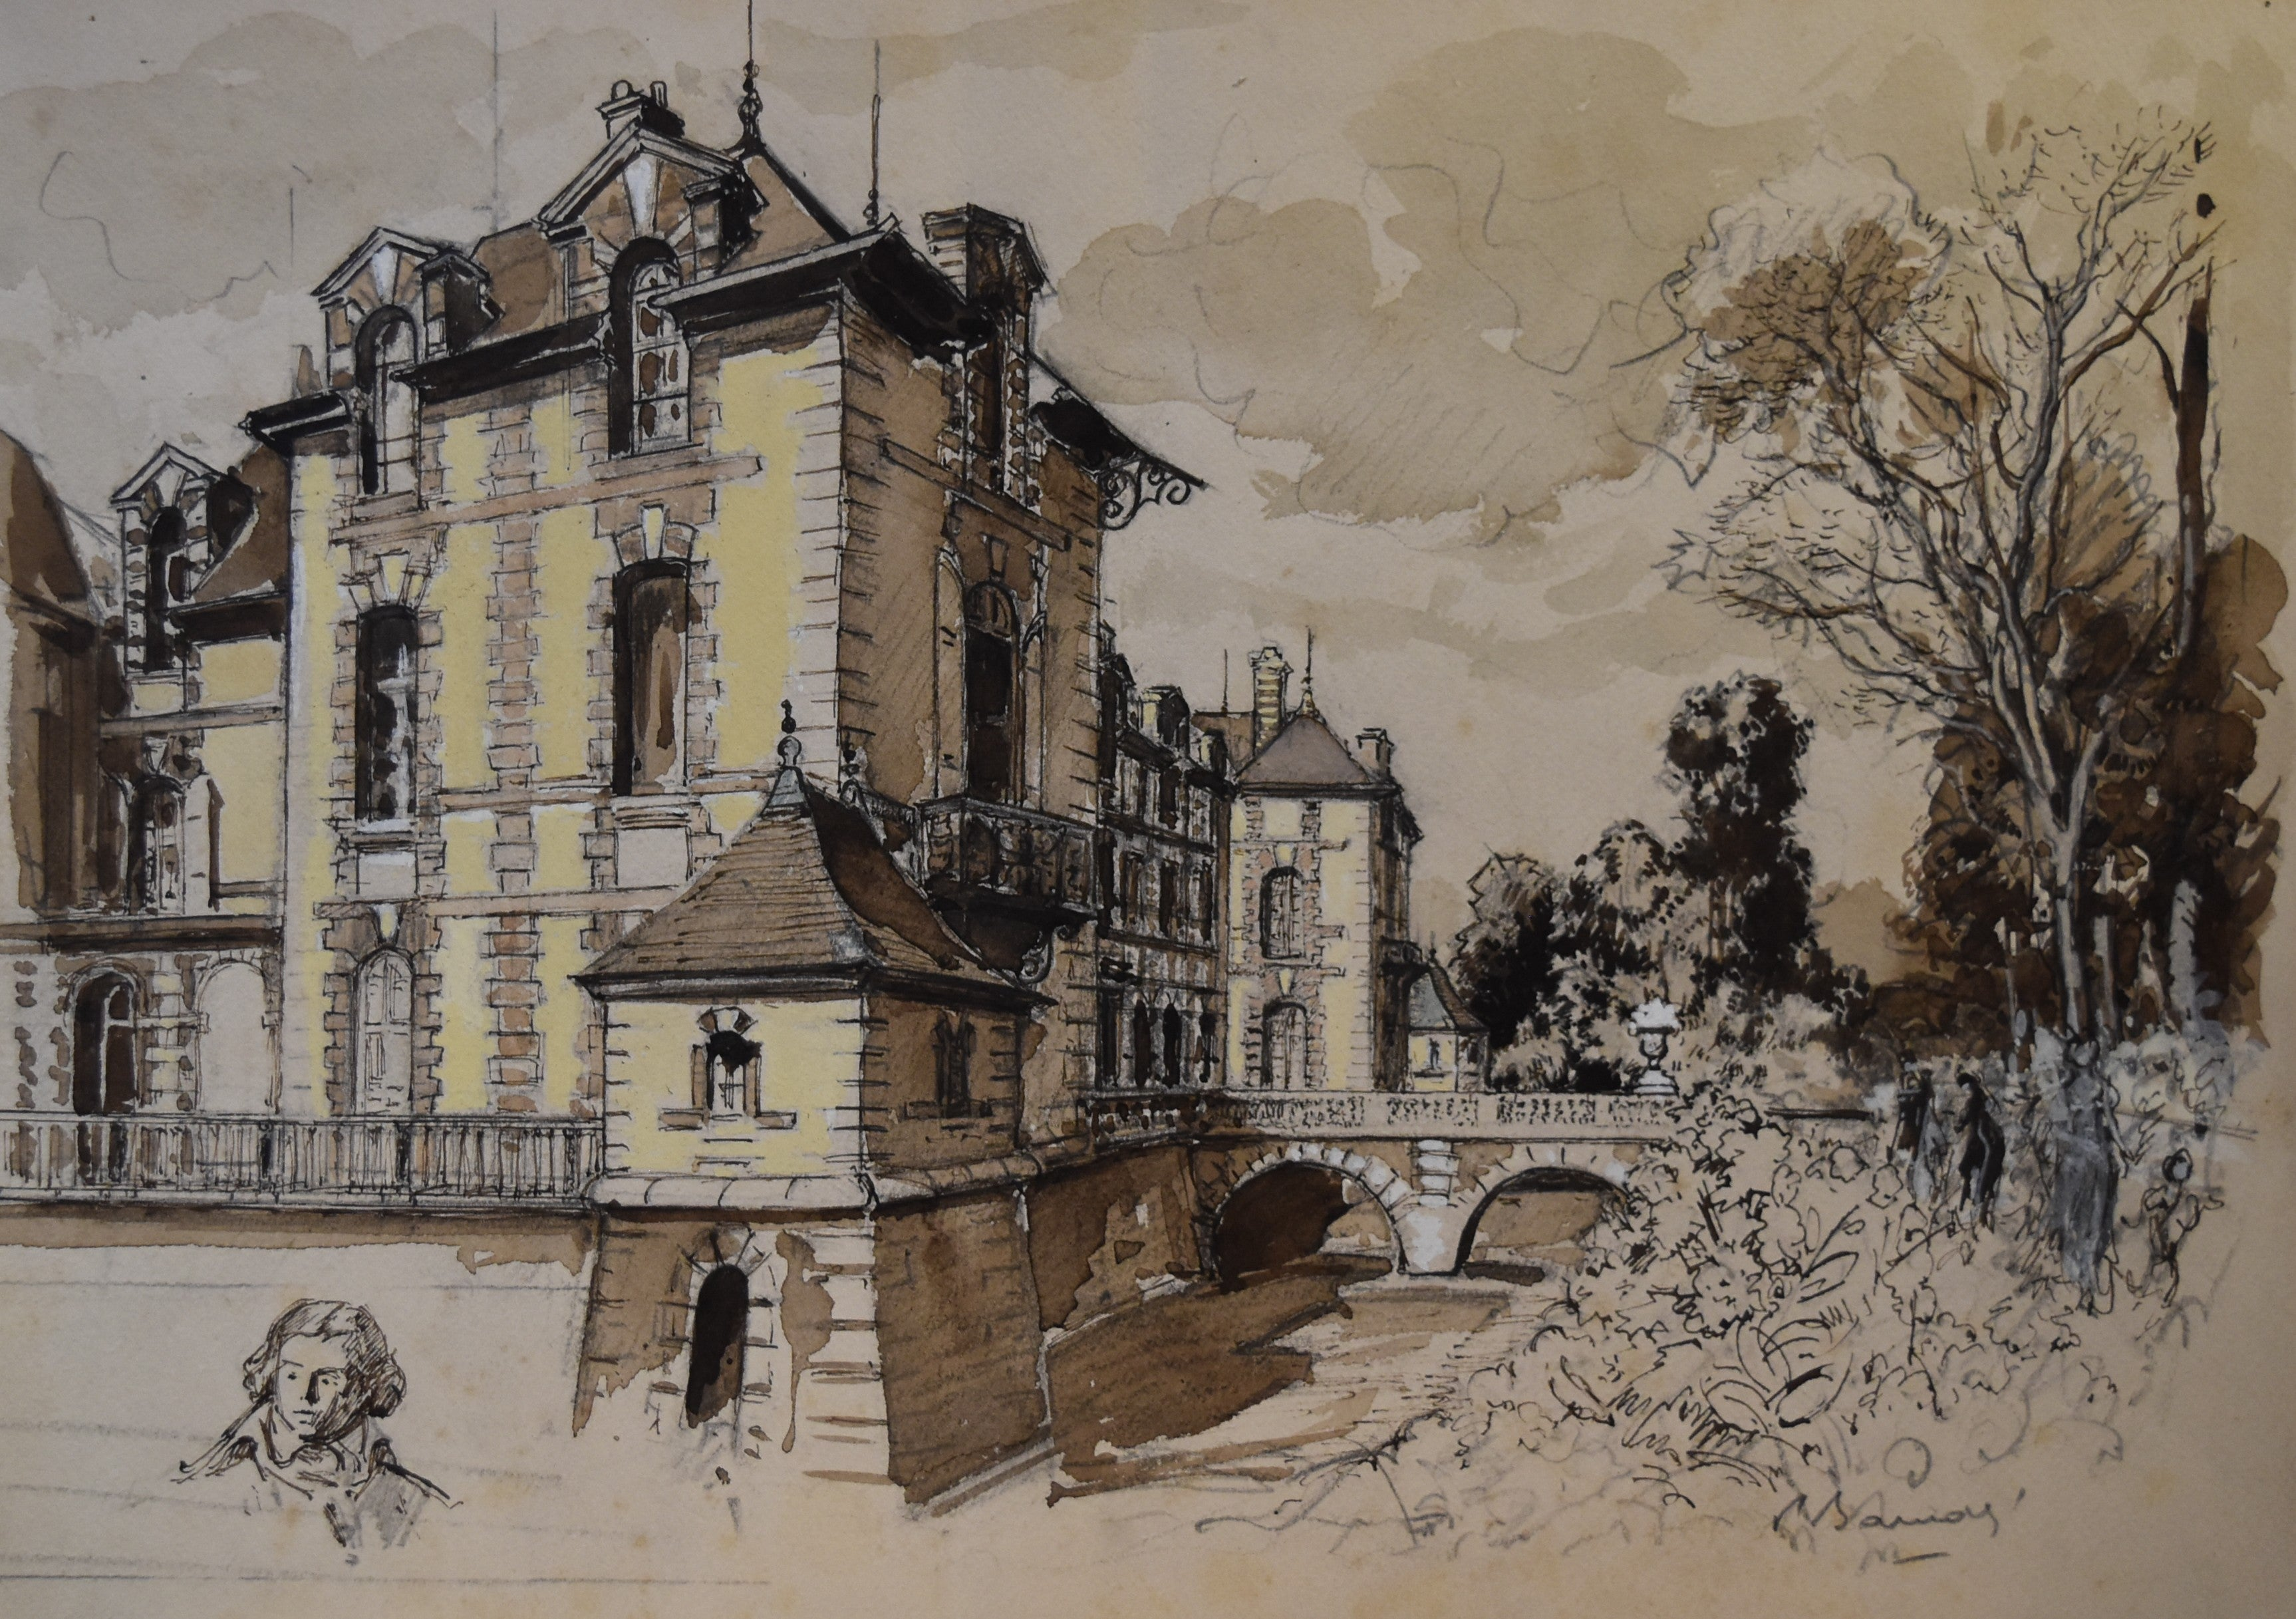 France early 20th centuryView of the Grosbois castle and head study, watercolor